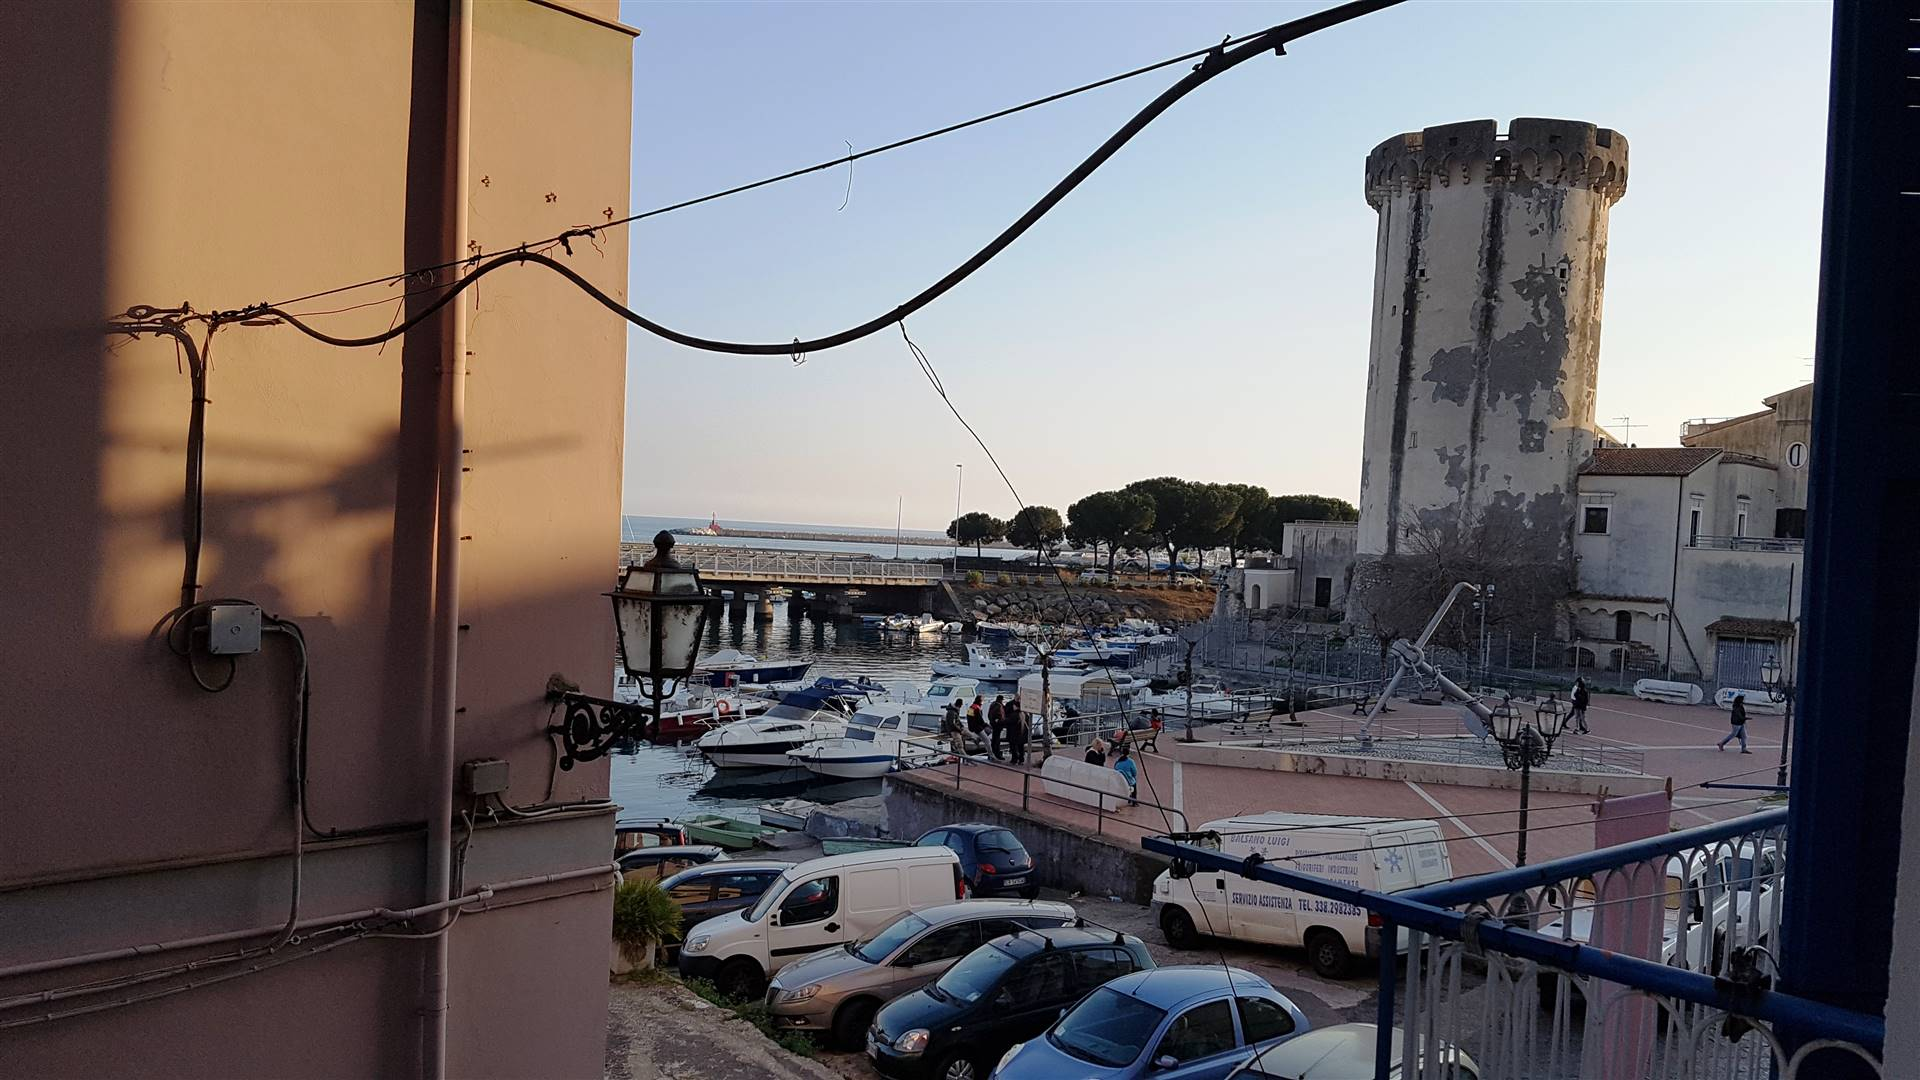 FORMIA, Apartment for rent, Habitable, Heating Individual heating system, Energetic class: G, placed at 1° on 3, composed by: 2 Rooms, Separate